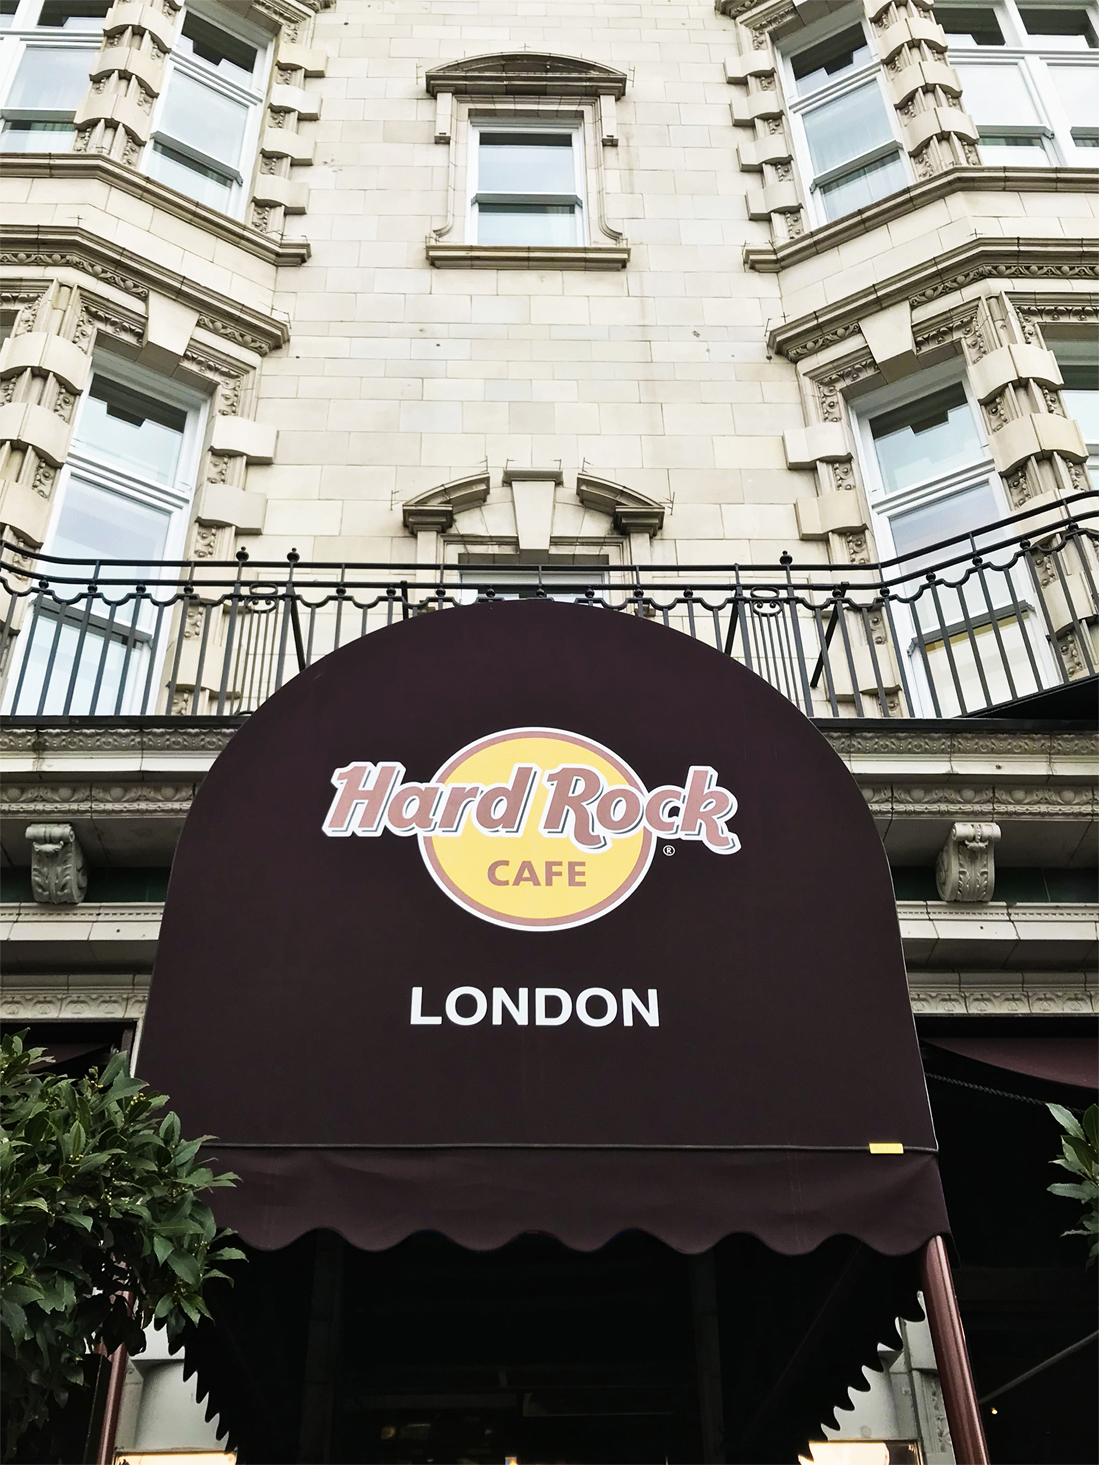 Awnings hard rock cafe 3